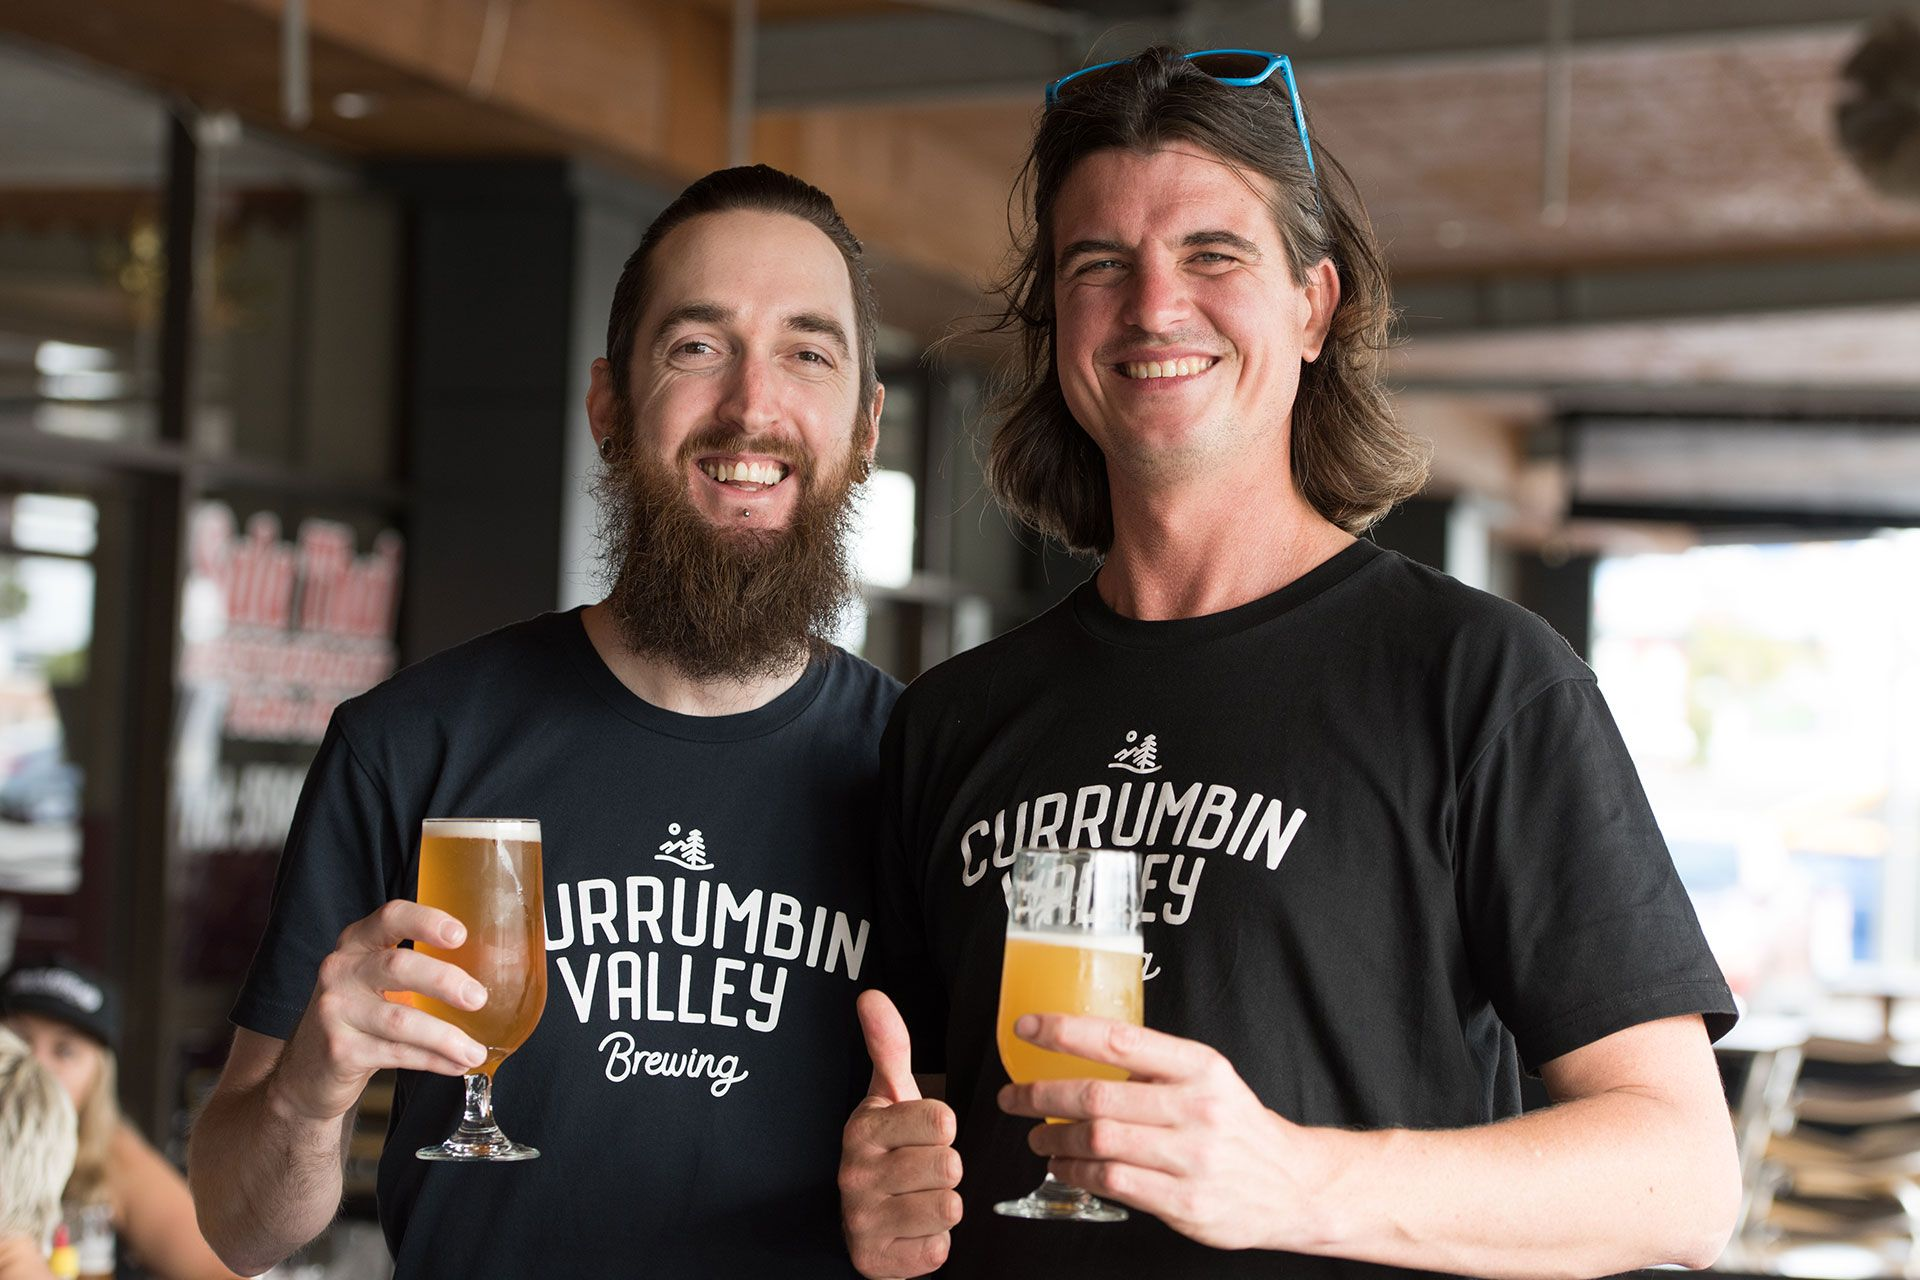 Welcome to Currumbin Valley Brewing